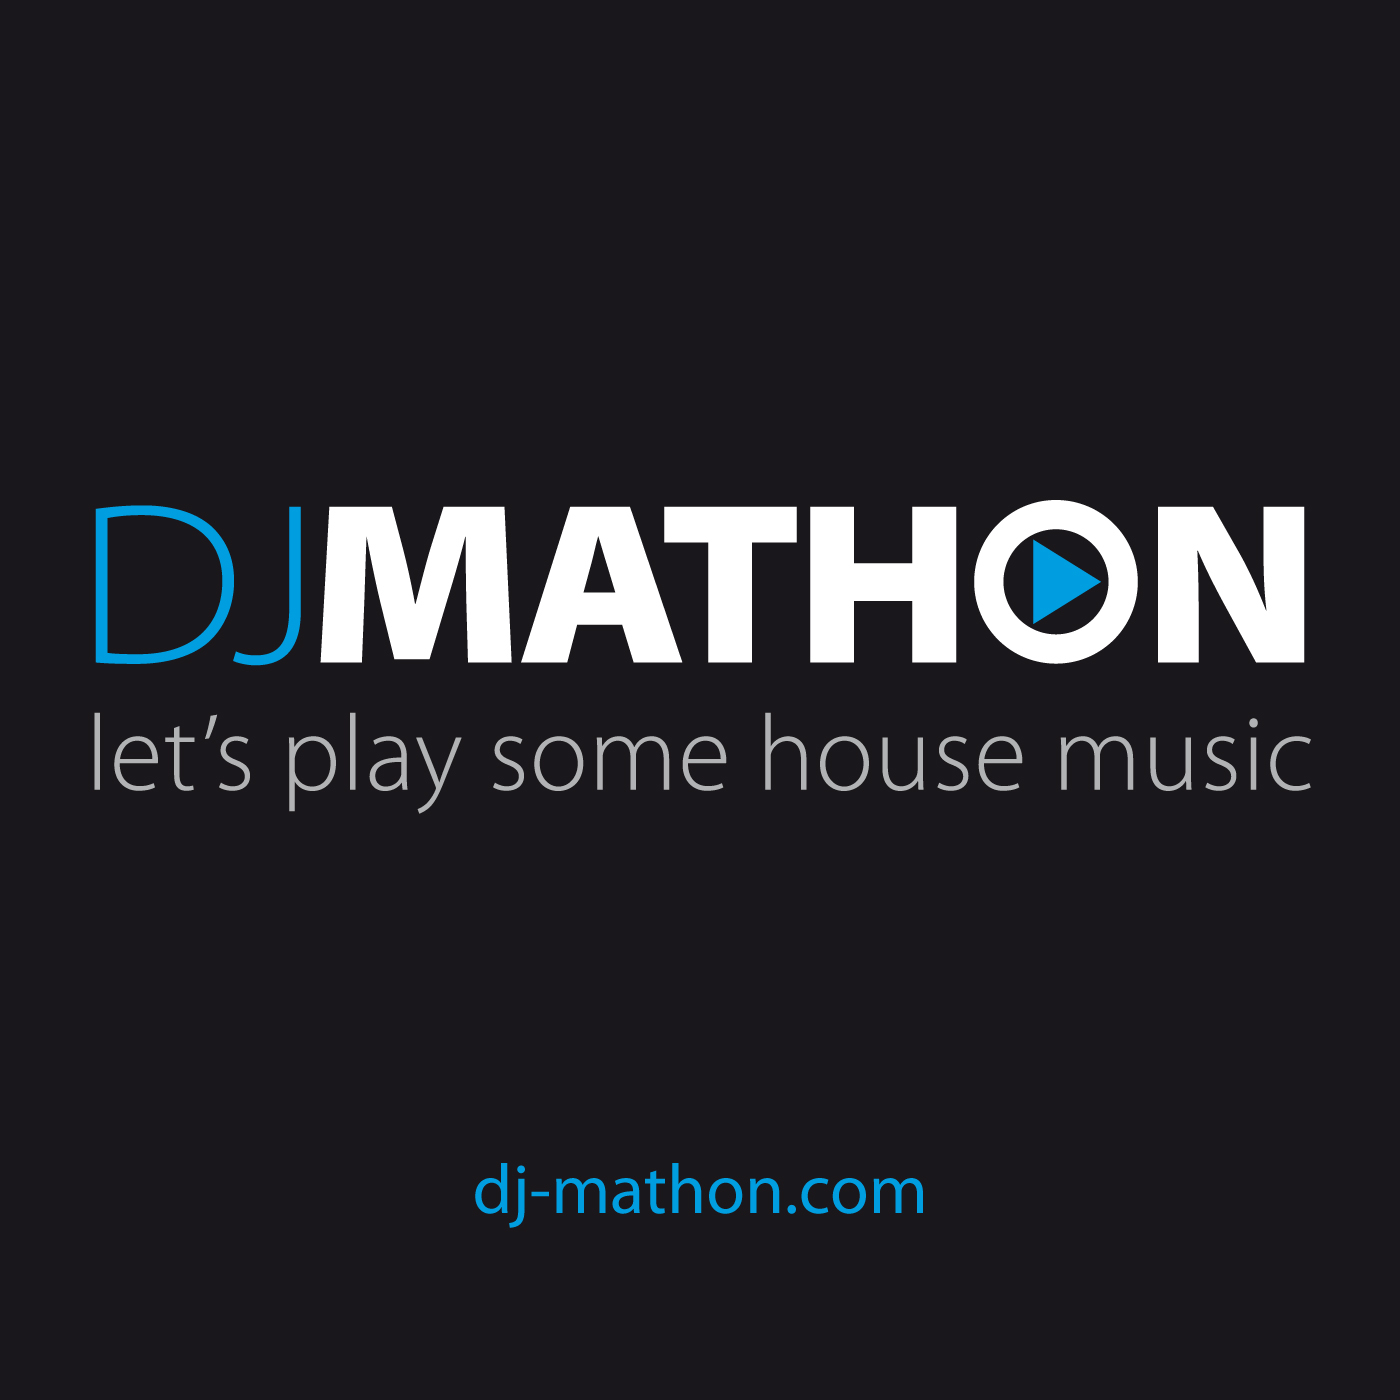 12 DJ MATHON TRAVEL THE WORLD